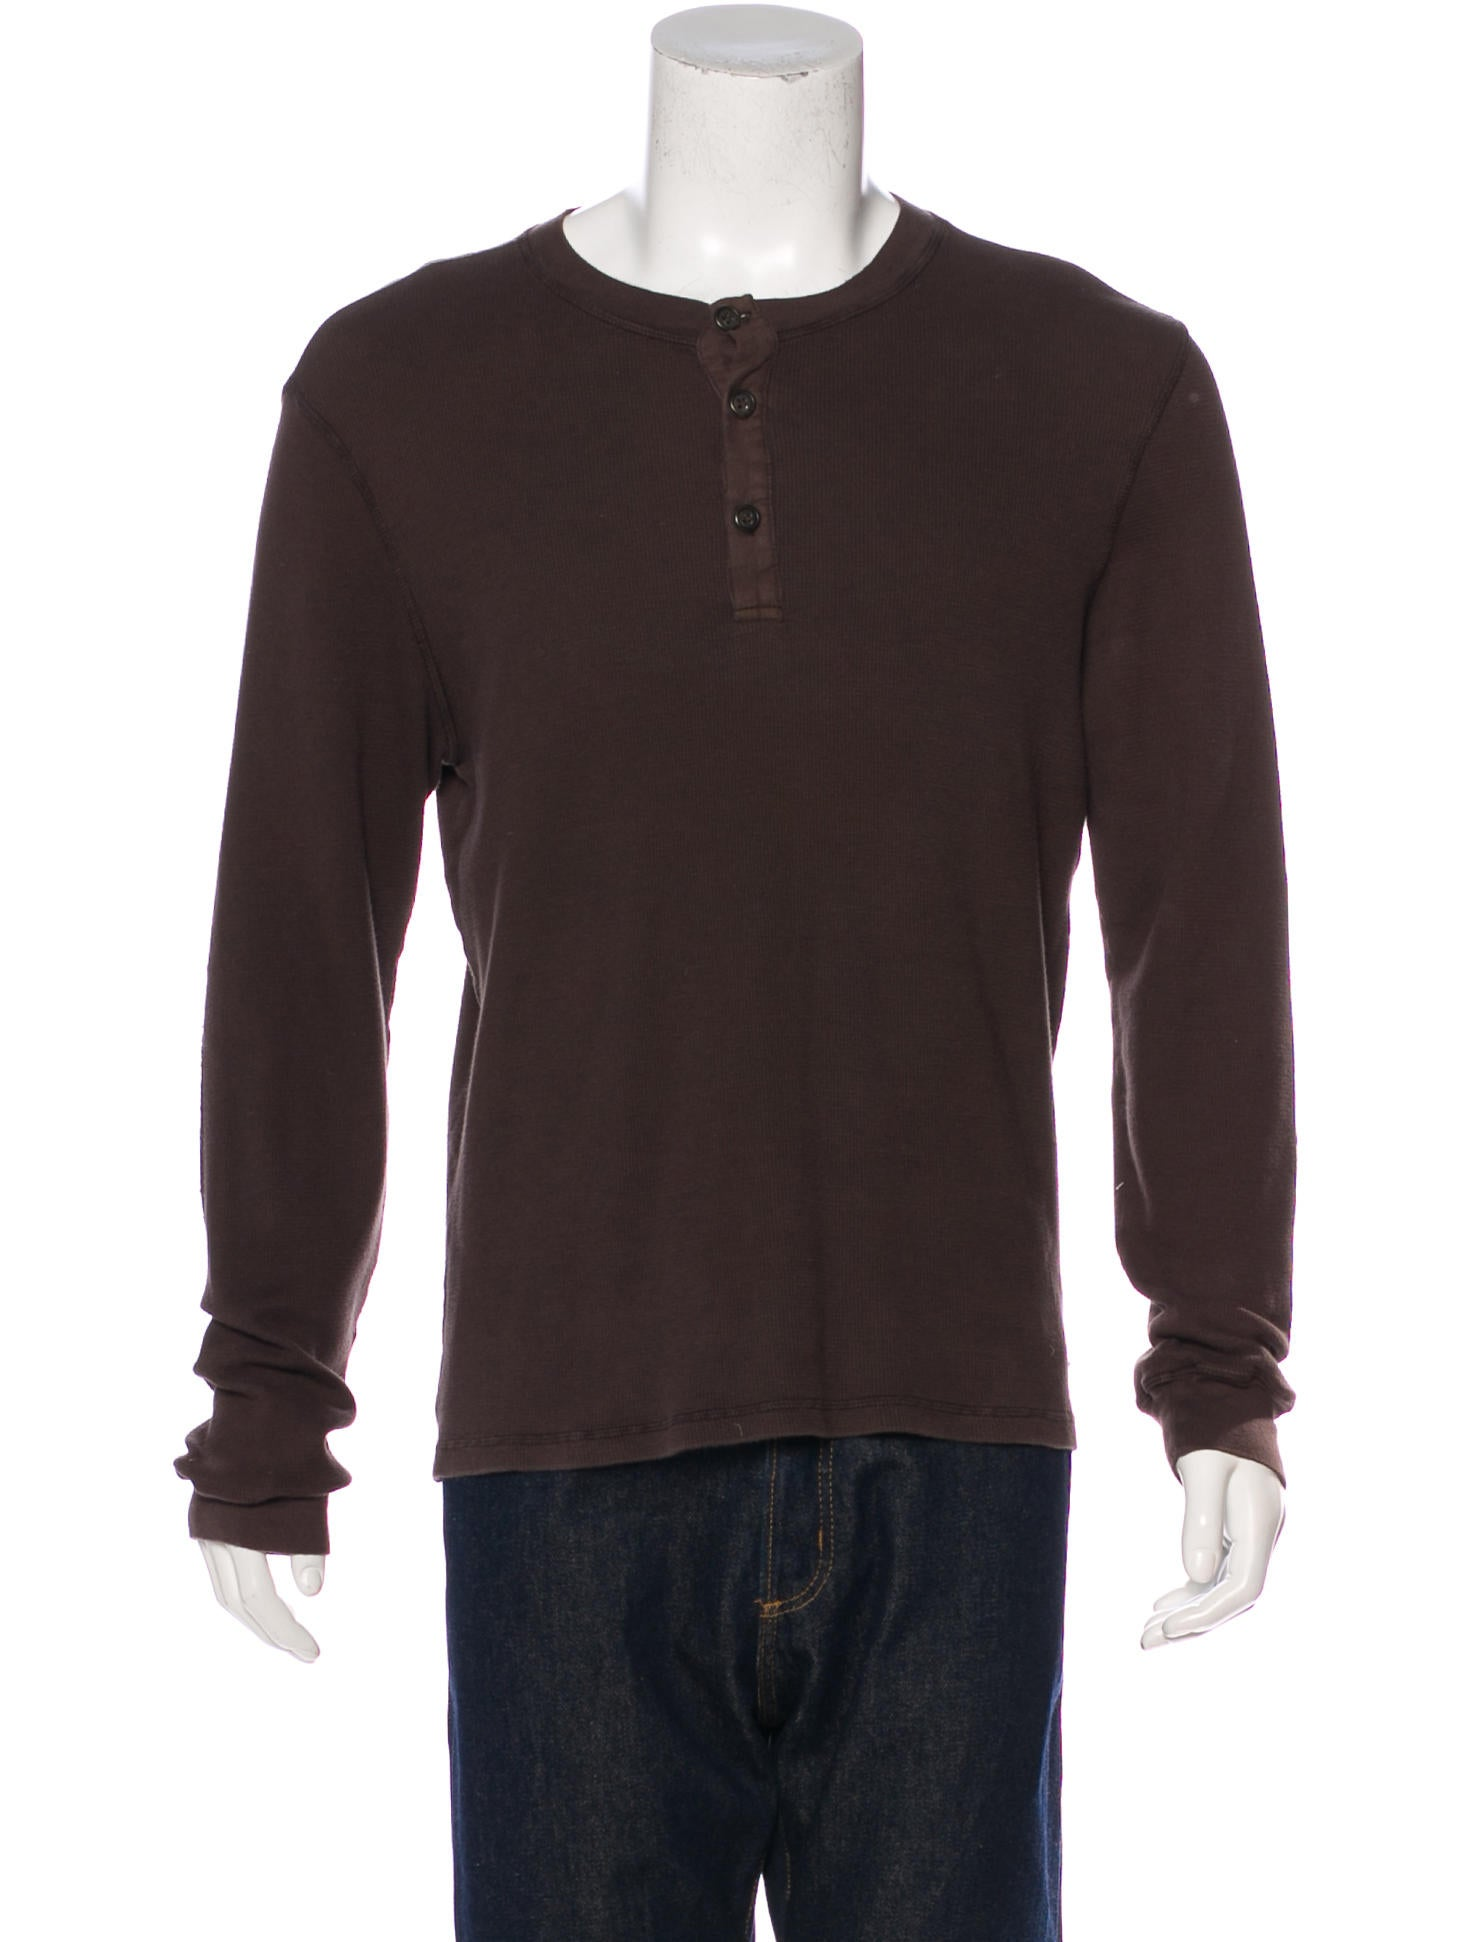 James perse thermal henley t shirt clothing wjp20350 for James perse henley shirt